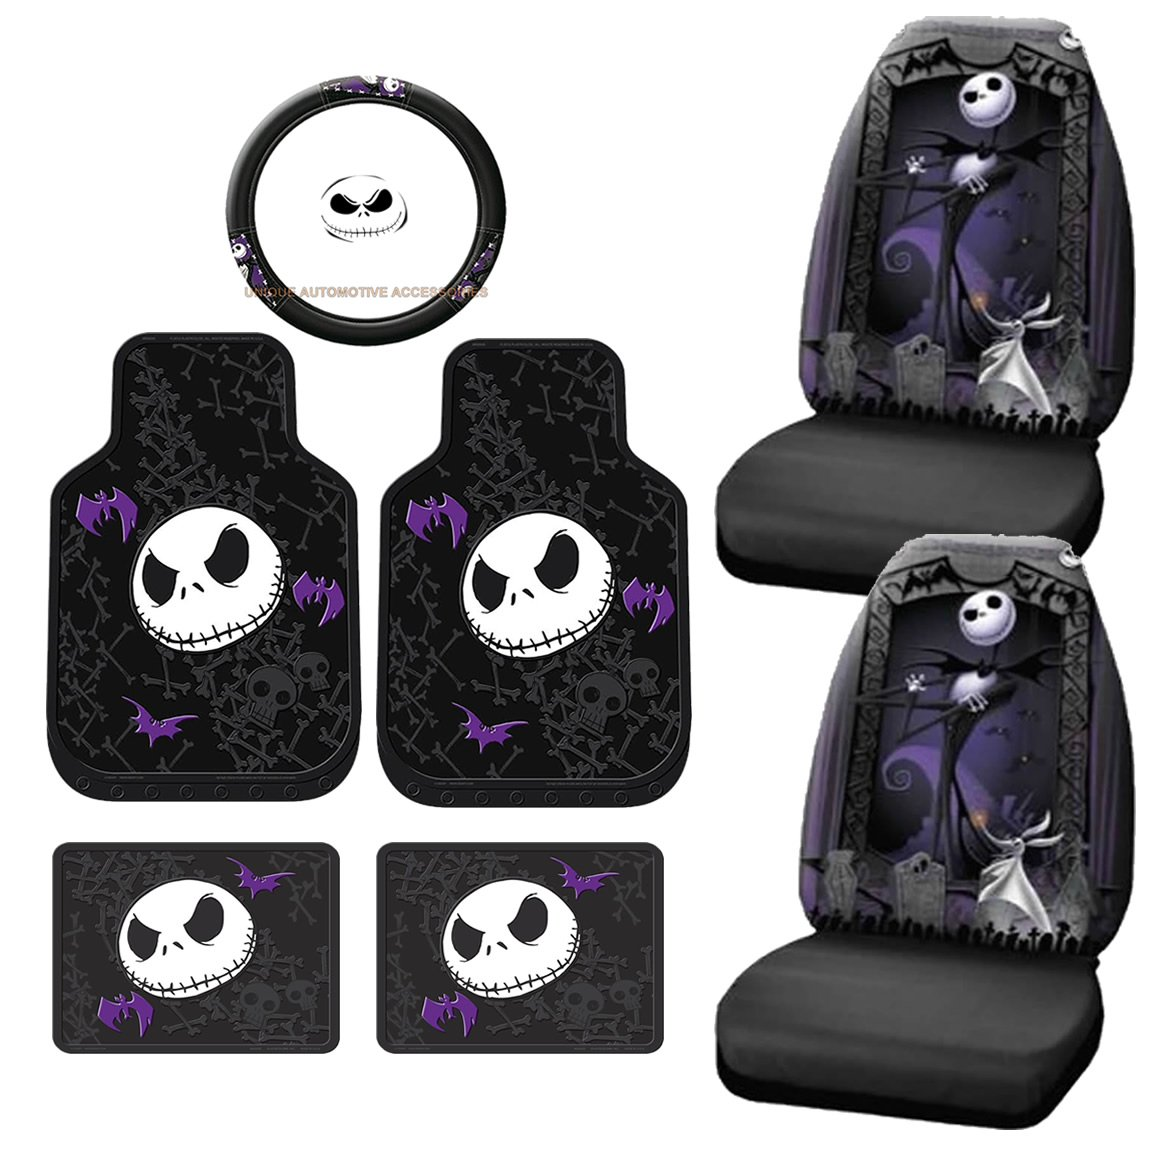 Jack skellington bathroom set - Amazon Com 7pc Nightmare Before Christmas Jack Skellington Seat Covers Rubber Floor Mat Set Automotive